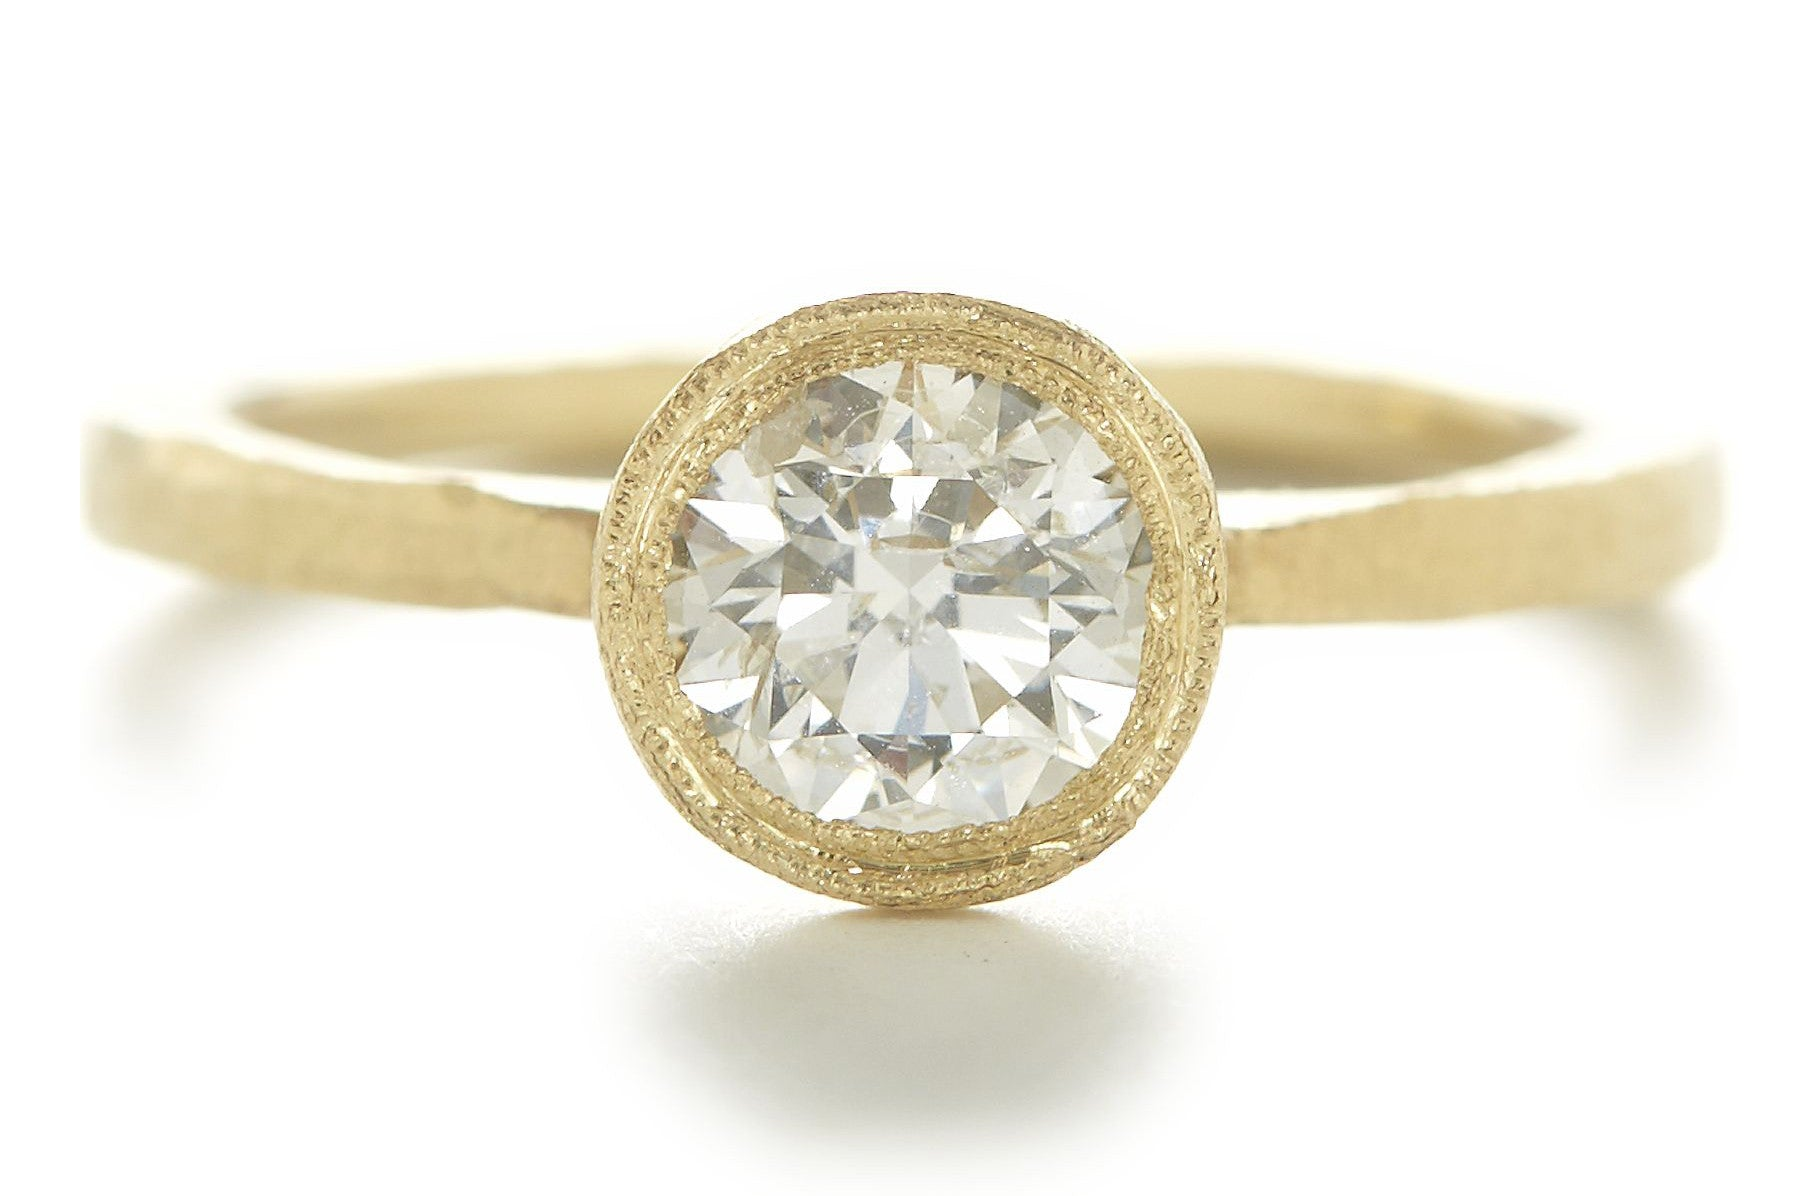 Dawes Design Etruscan Brilliant Cut Diamond Engagement Ring